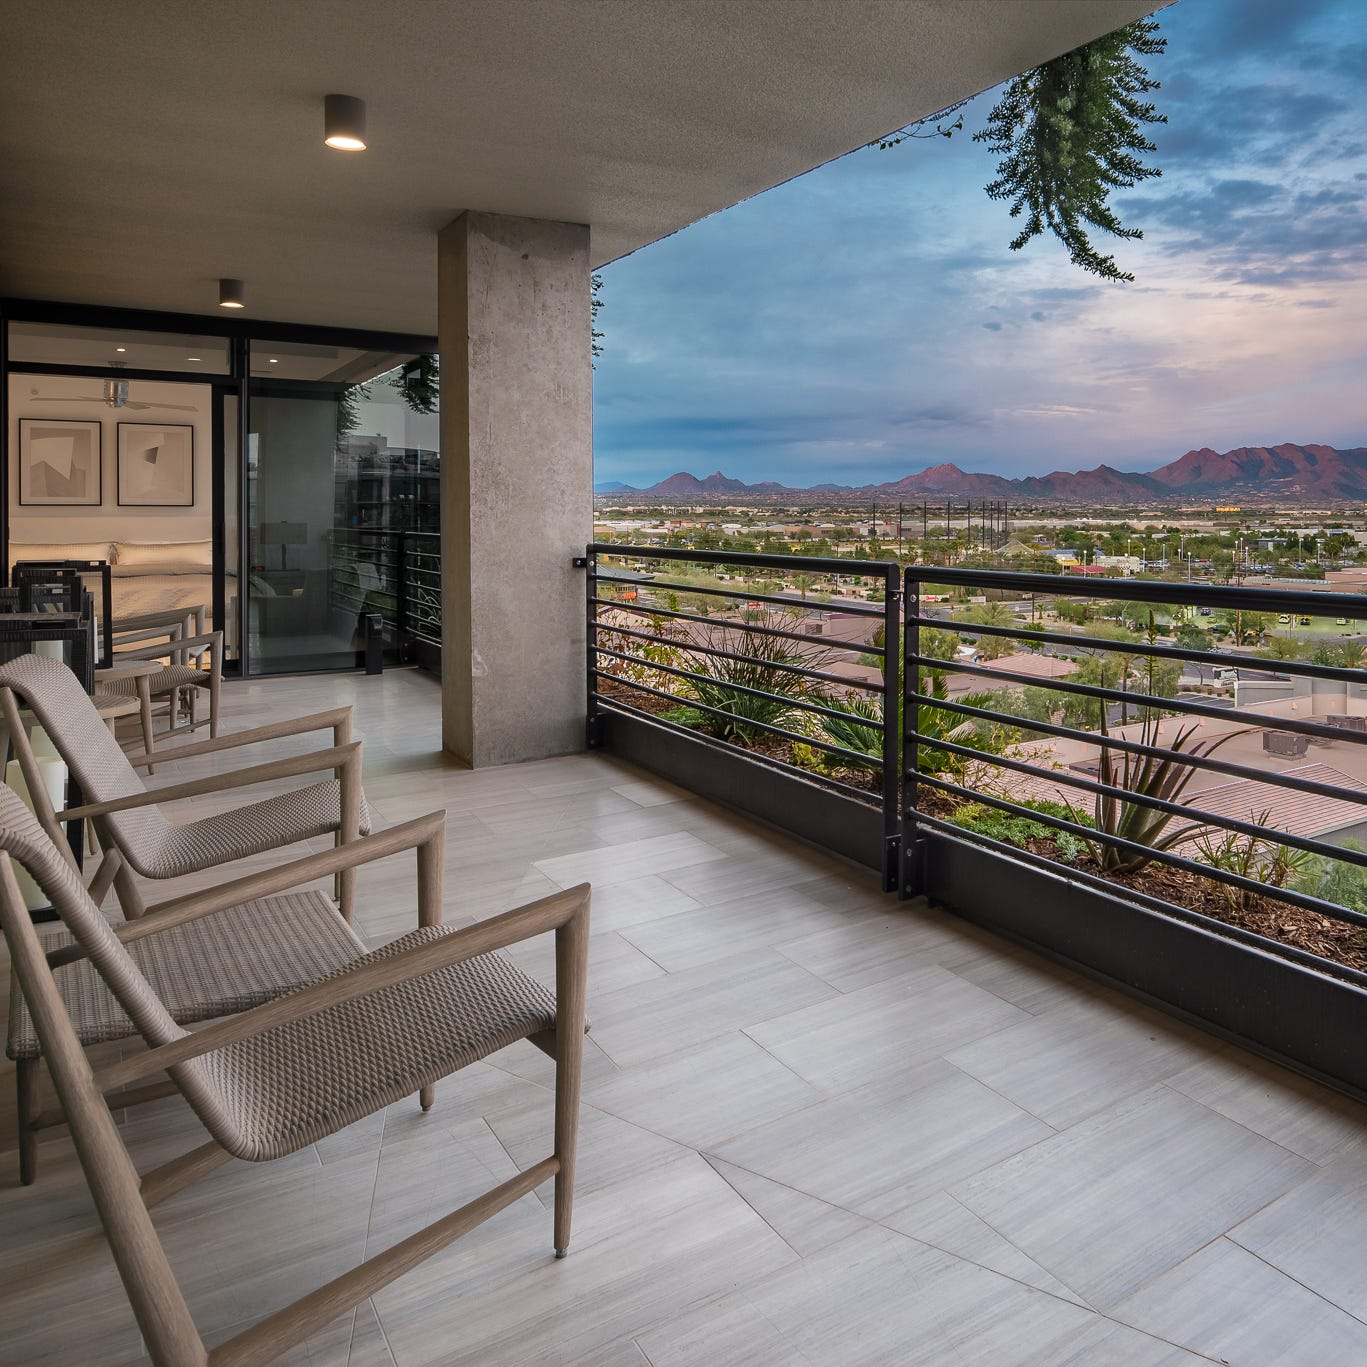 New condo sales, prices take a dip in metro Phoenix